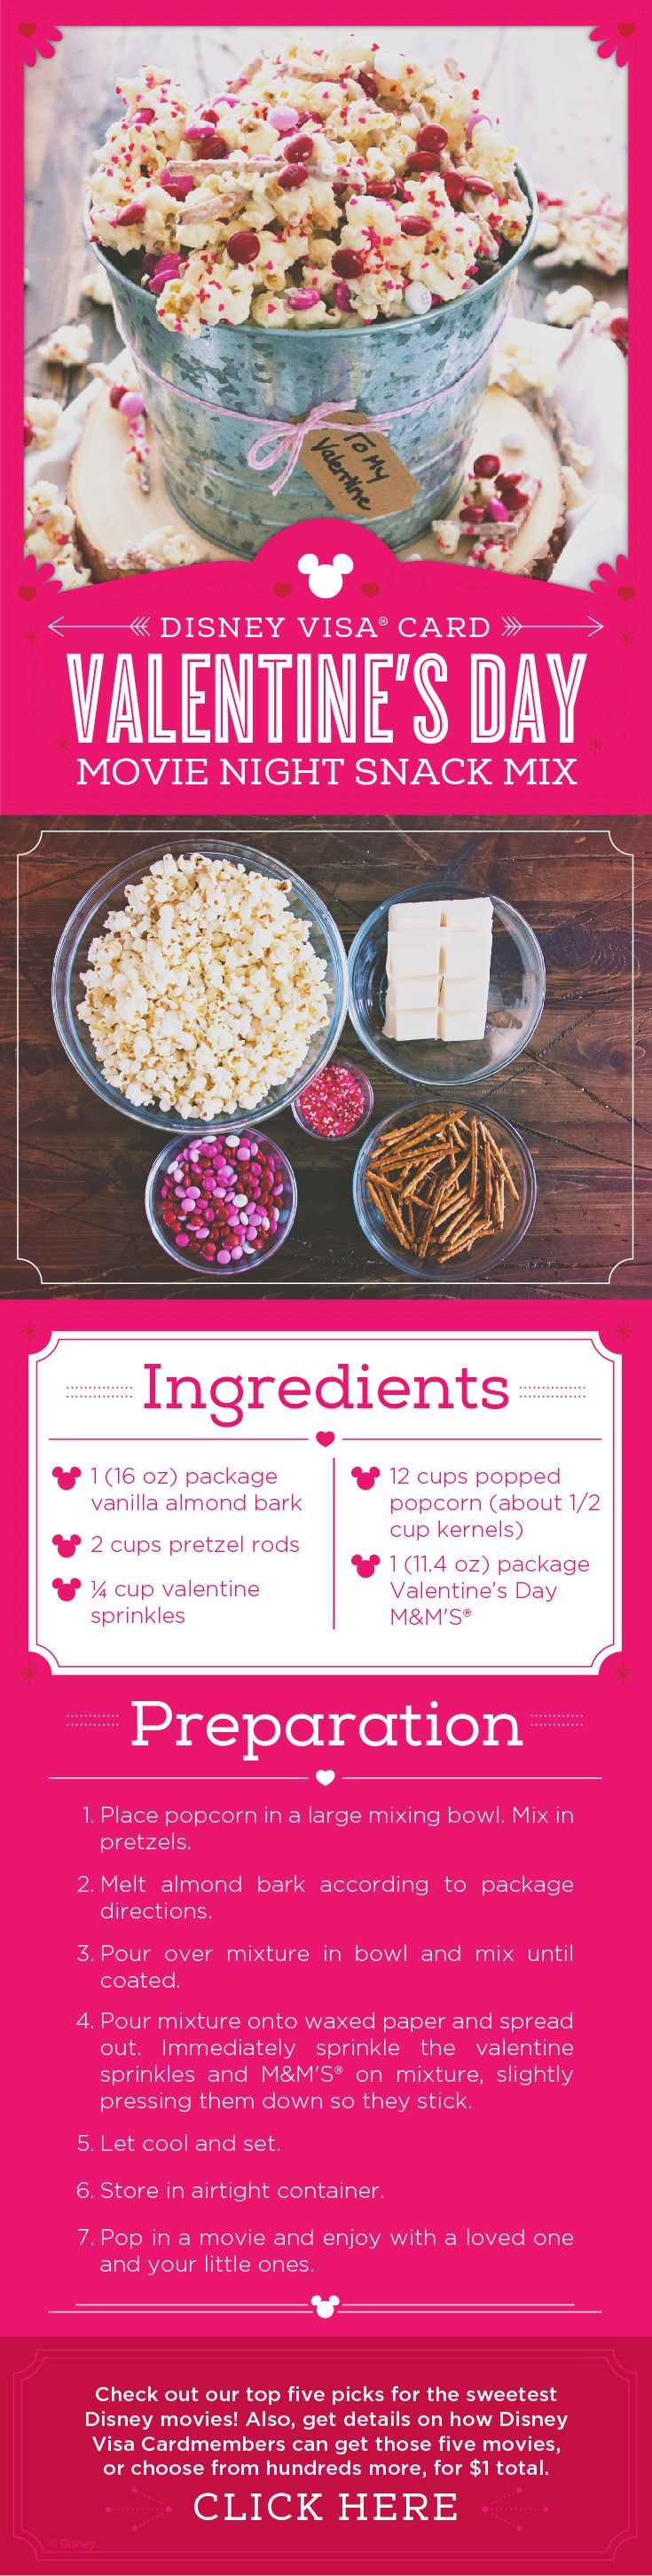 Whether it's Valentine's Day or any other day of the year, you can't go wrong with a family movie night! And nothing goes better with a Disney movie than pairing it with a homemade Valentine sweet. This popcorn recipe will prove to be so tasty your family will ask for it again and again. So settle in for family movie night and a gourmet bowl of popcorn!